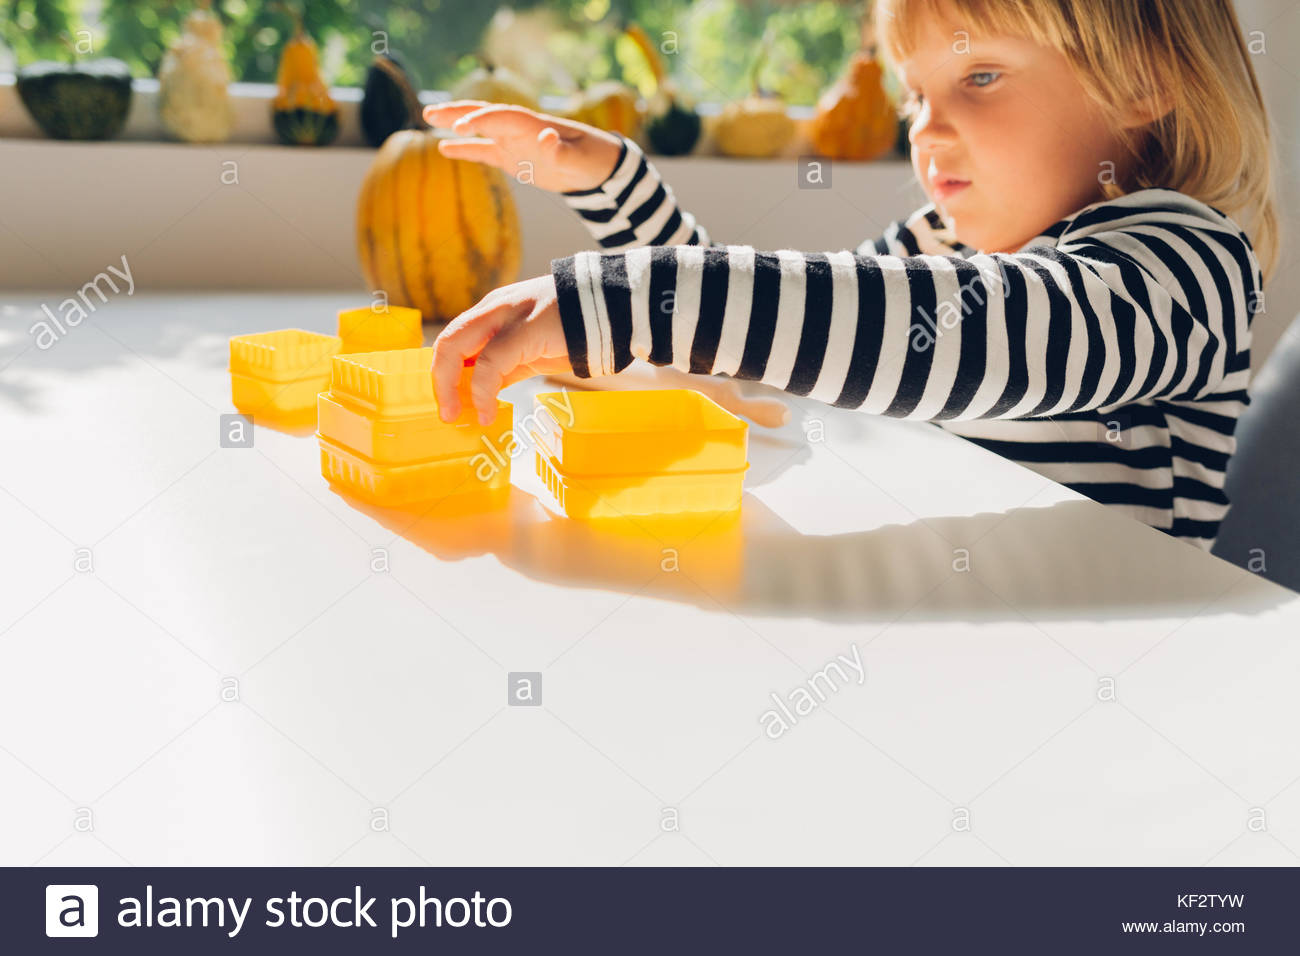 Girl is playing with molds for cakes - Stock Image